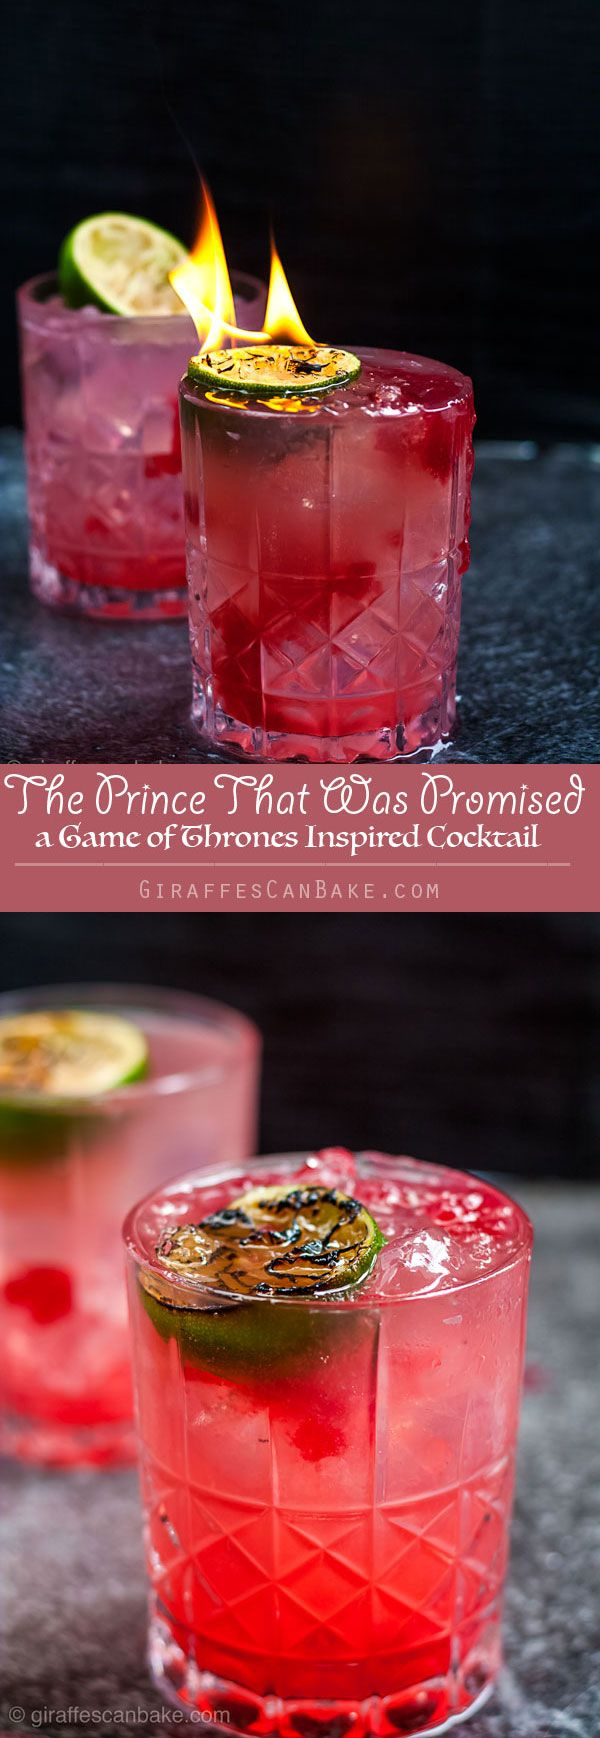 The Prince That Was Promised With Lightbringer Garnish Recipe Game Of Thrones Cocktails Smoked Cocktails Cocktails